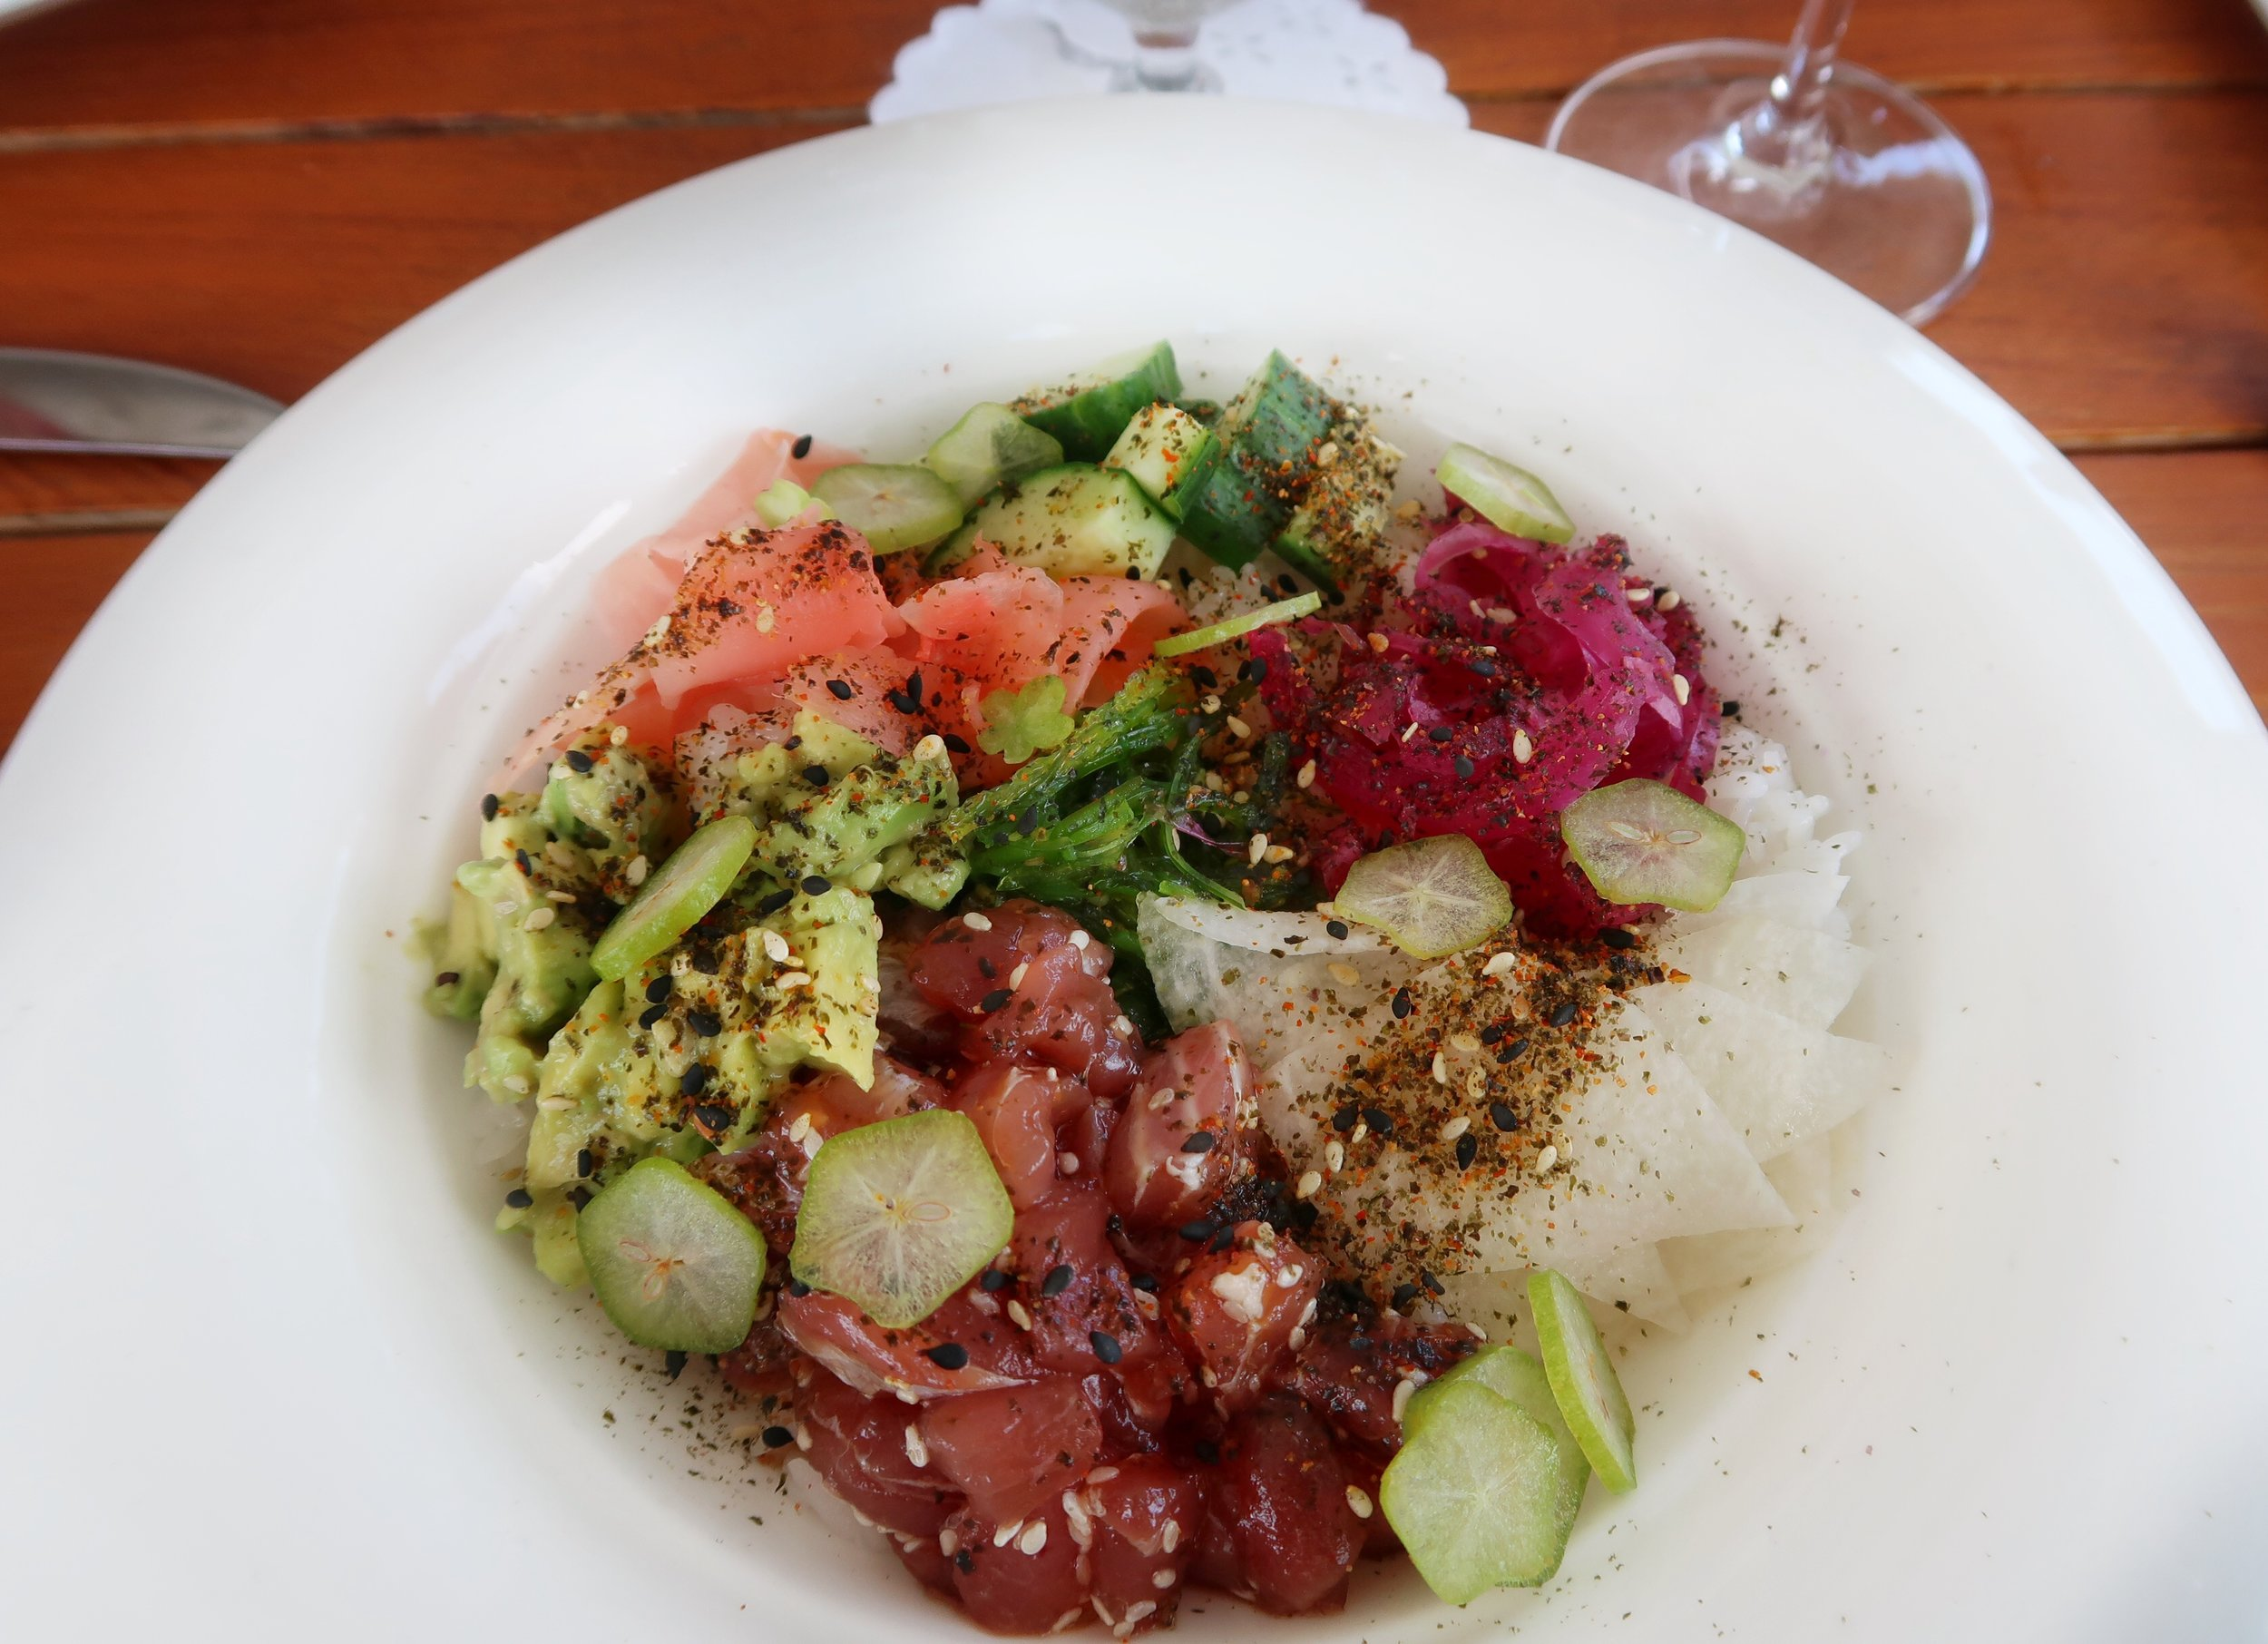 A refreshing and light Tuna Poke Bowl - Yellowfin tuna, rice, wakame seaweed salad, avocado, pickled vegetables, furikake and herbs.